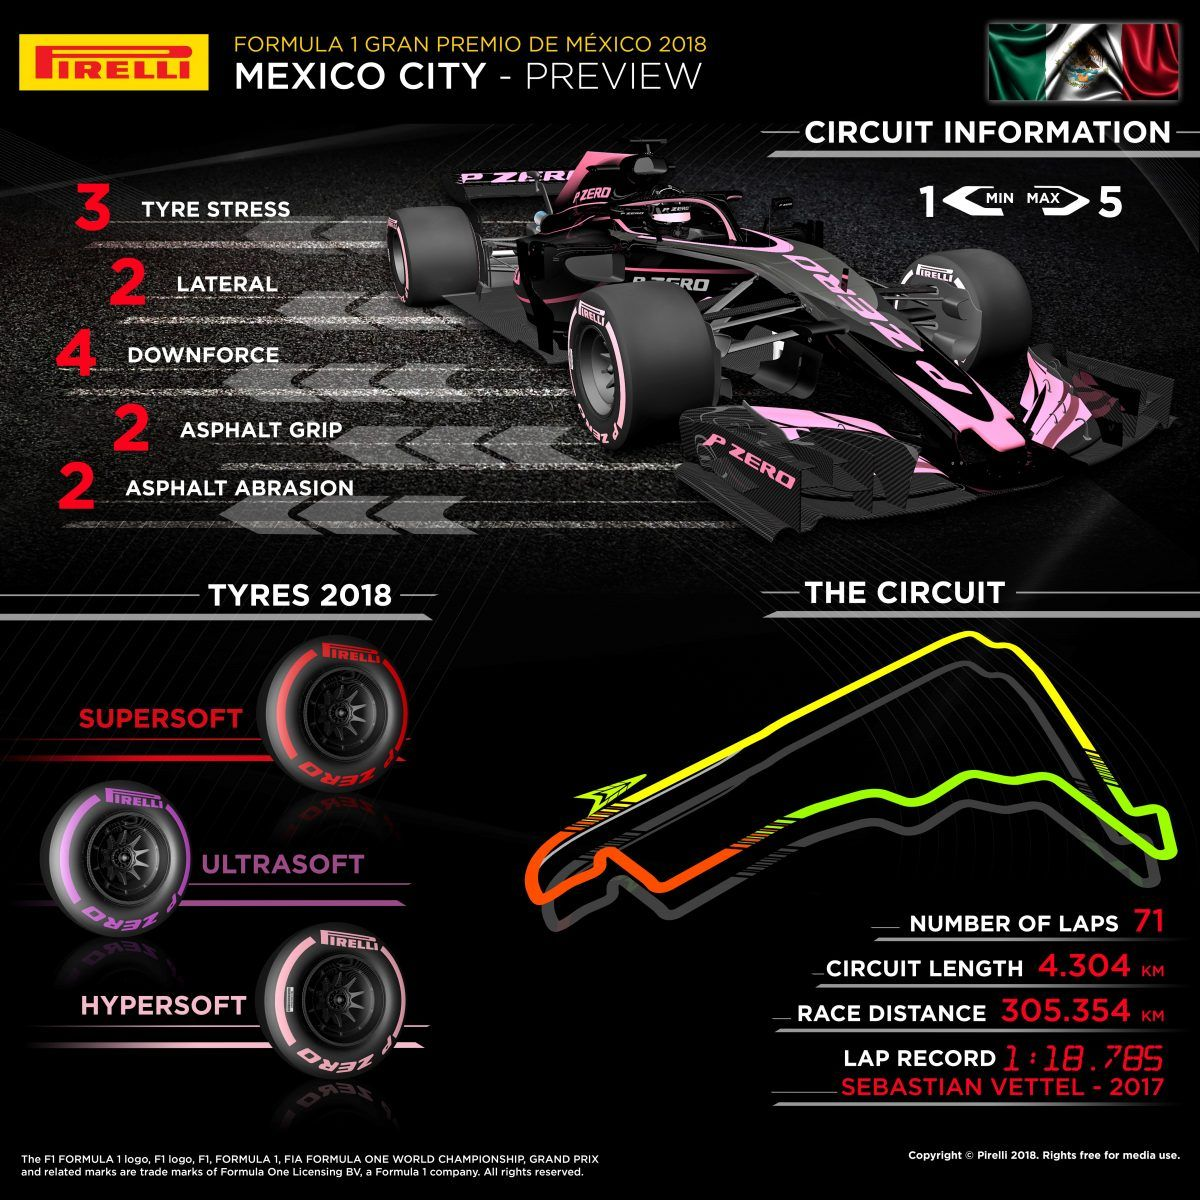 In a nutshell: which tyres for the Mexican Grand Prix?